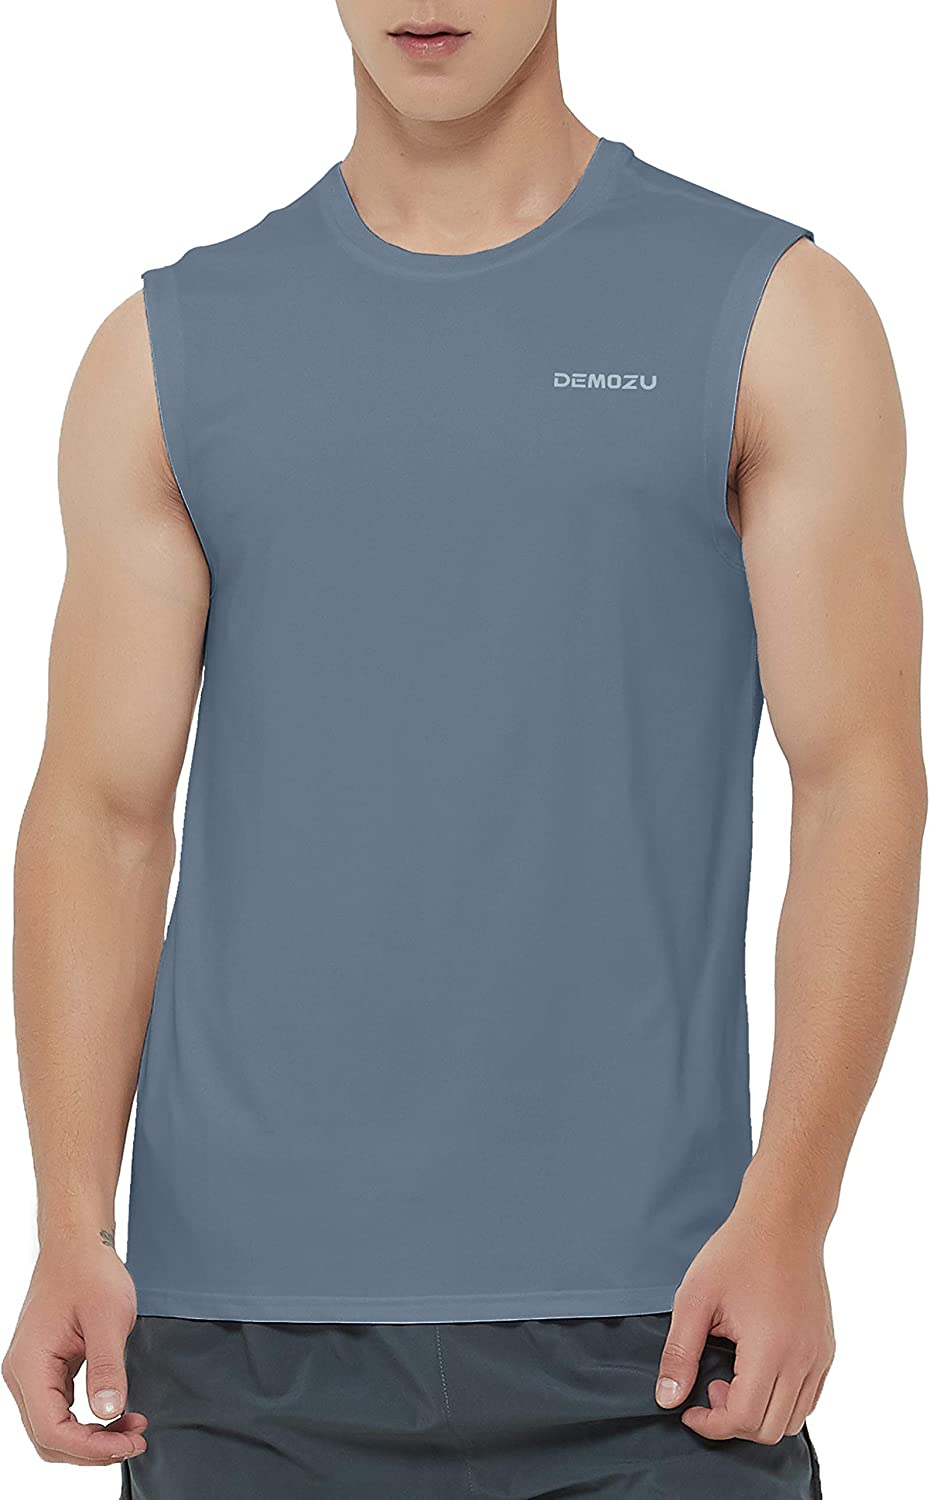 Leegor Mens Solid Sleeveless Quick Dry Tank Top for Outdoor Camping Training Vest Bodybuilding Sport Fitness T-Shirt